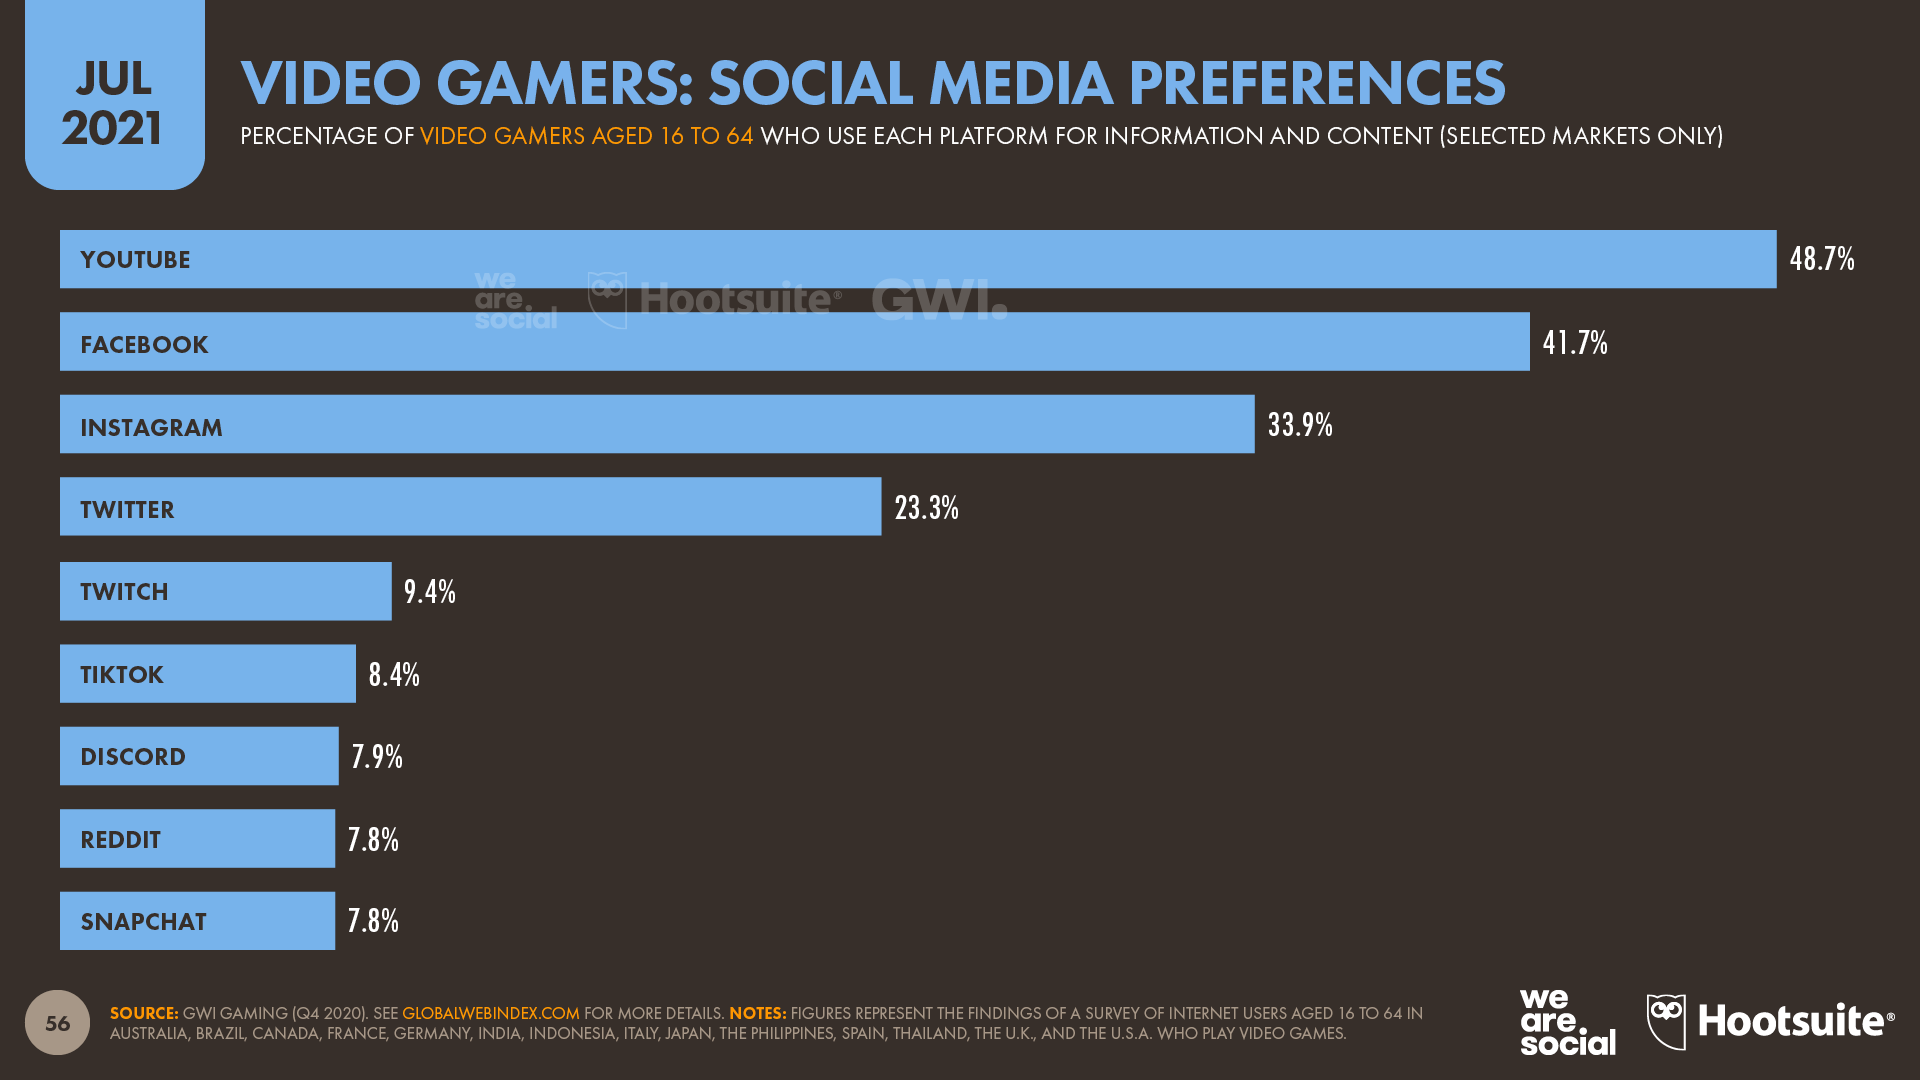 chart showing video gamers' social media preferences as of July 2021